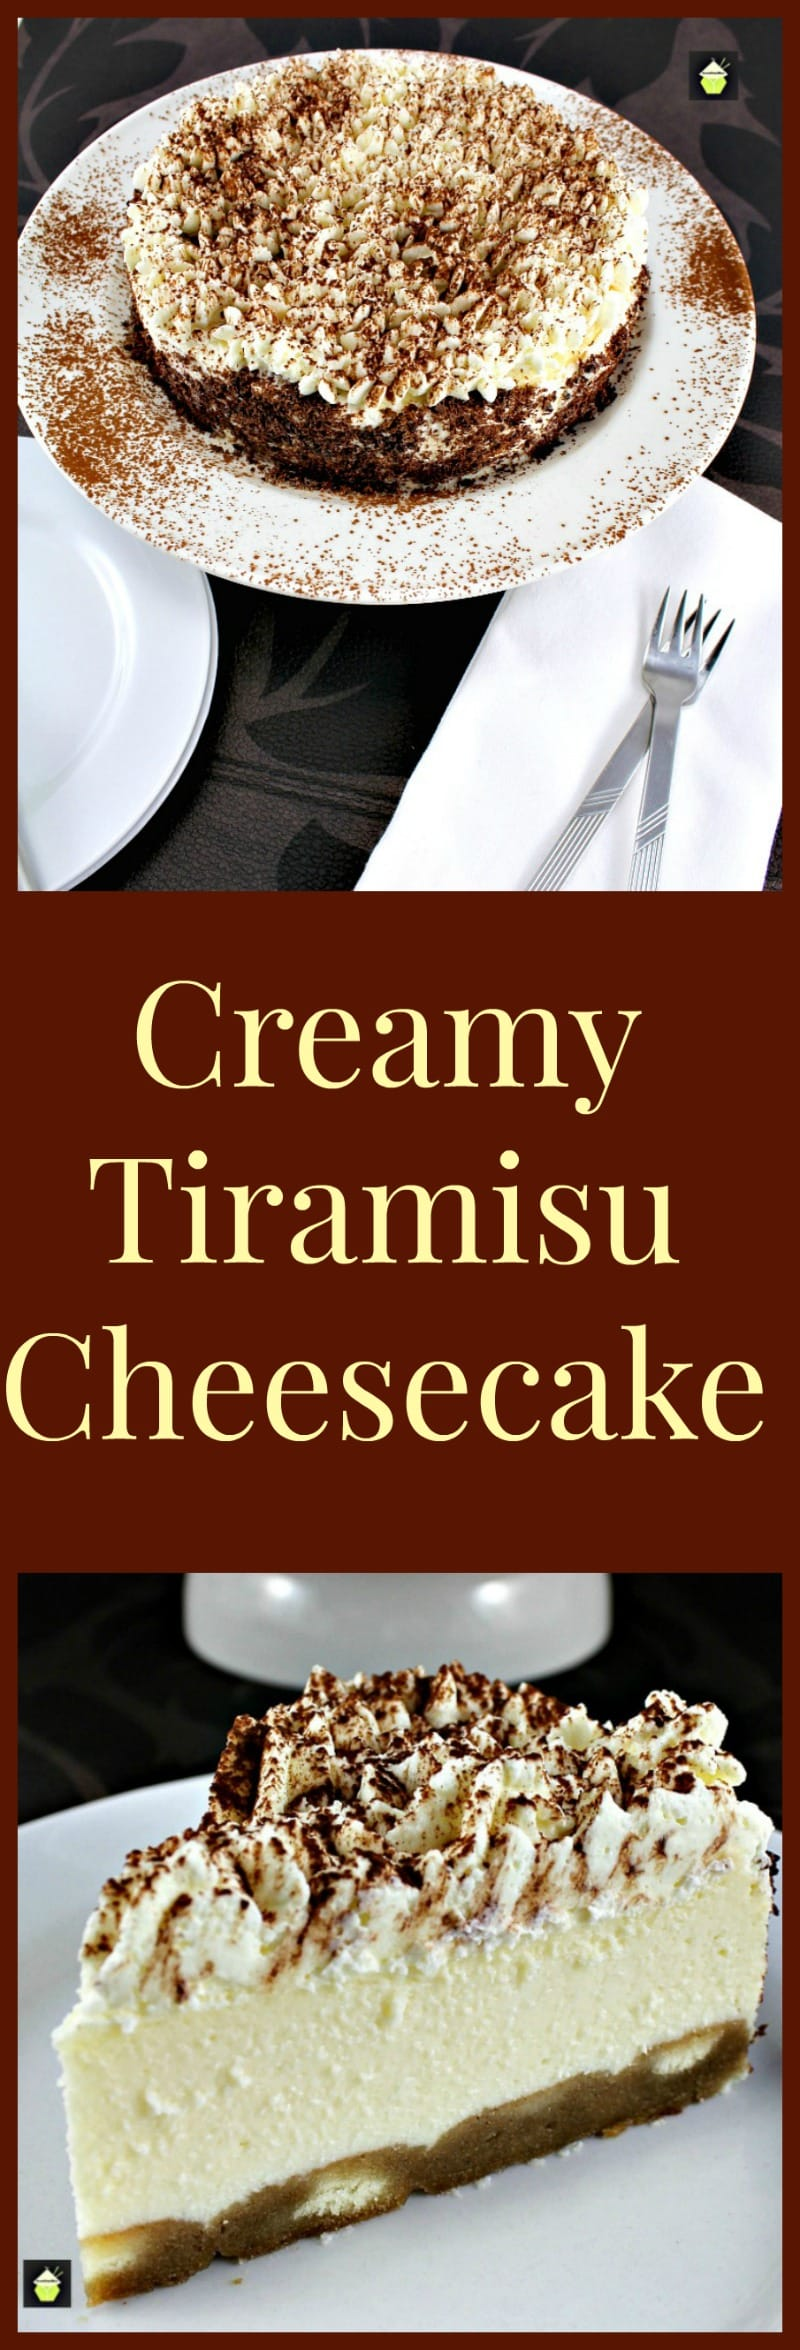 Creamy Tiramisu Cheesecake. This is a lovely dessert with the flavors of the classic Italian Tiramisu. If you like Tiramisu then you will enjoy this!